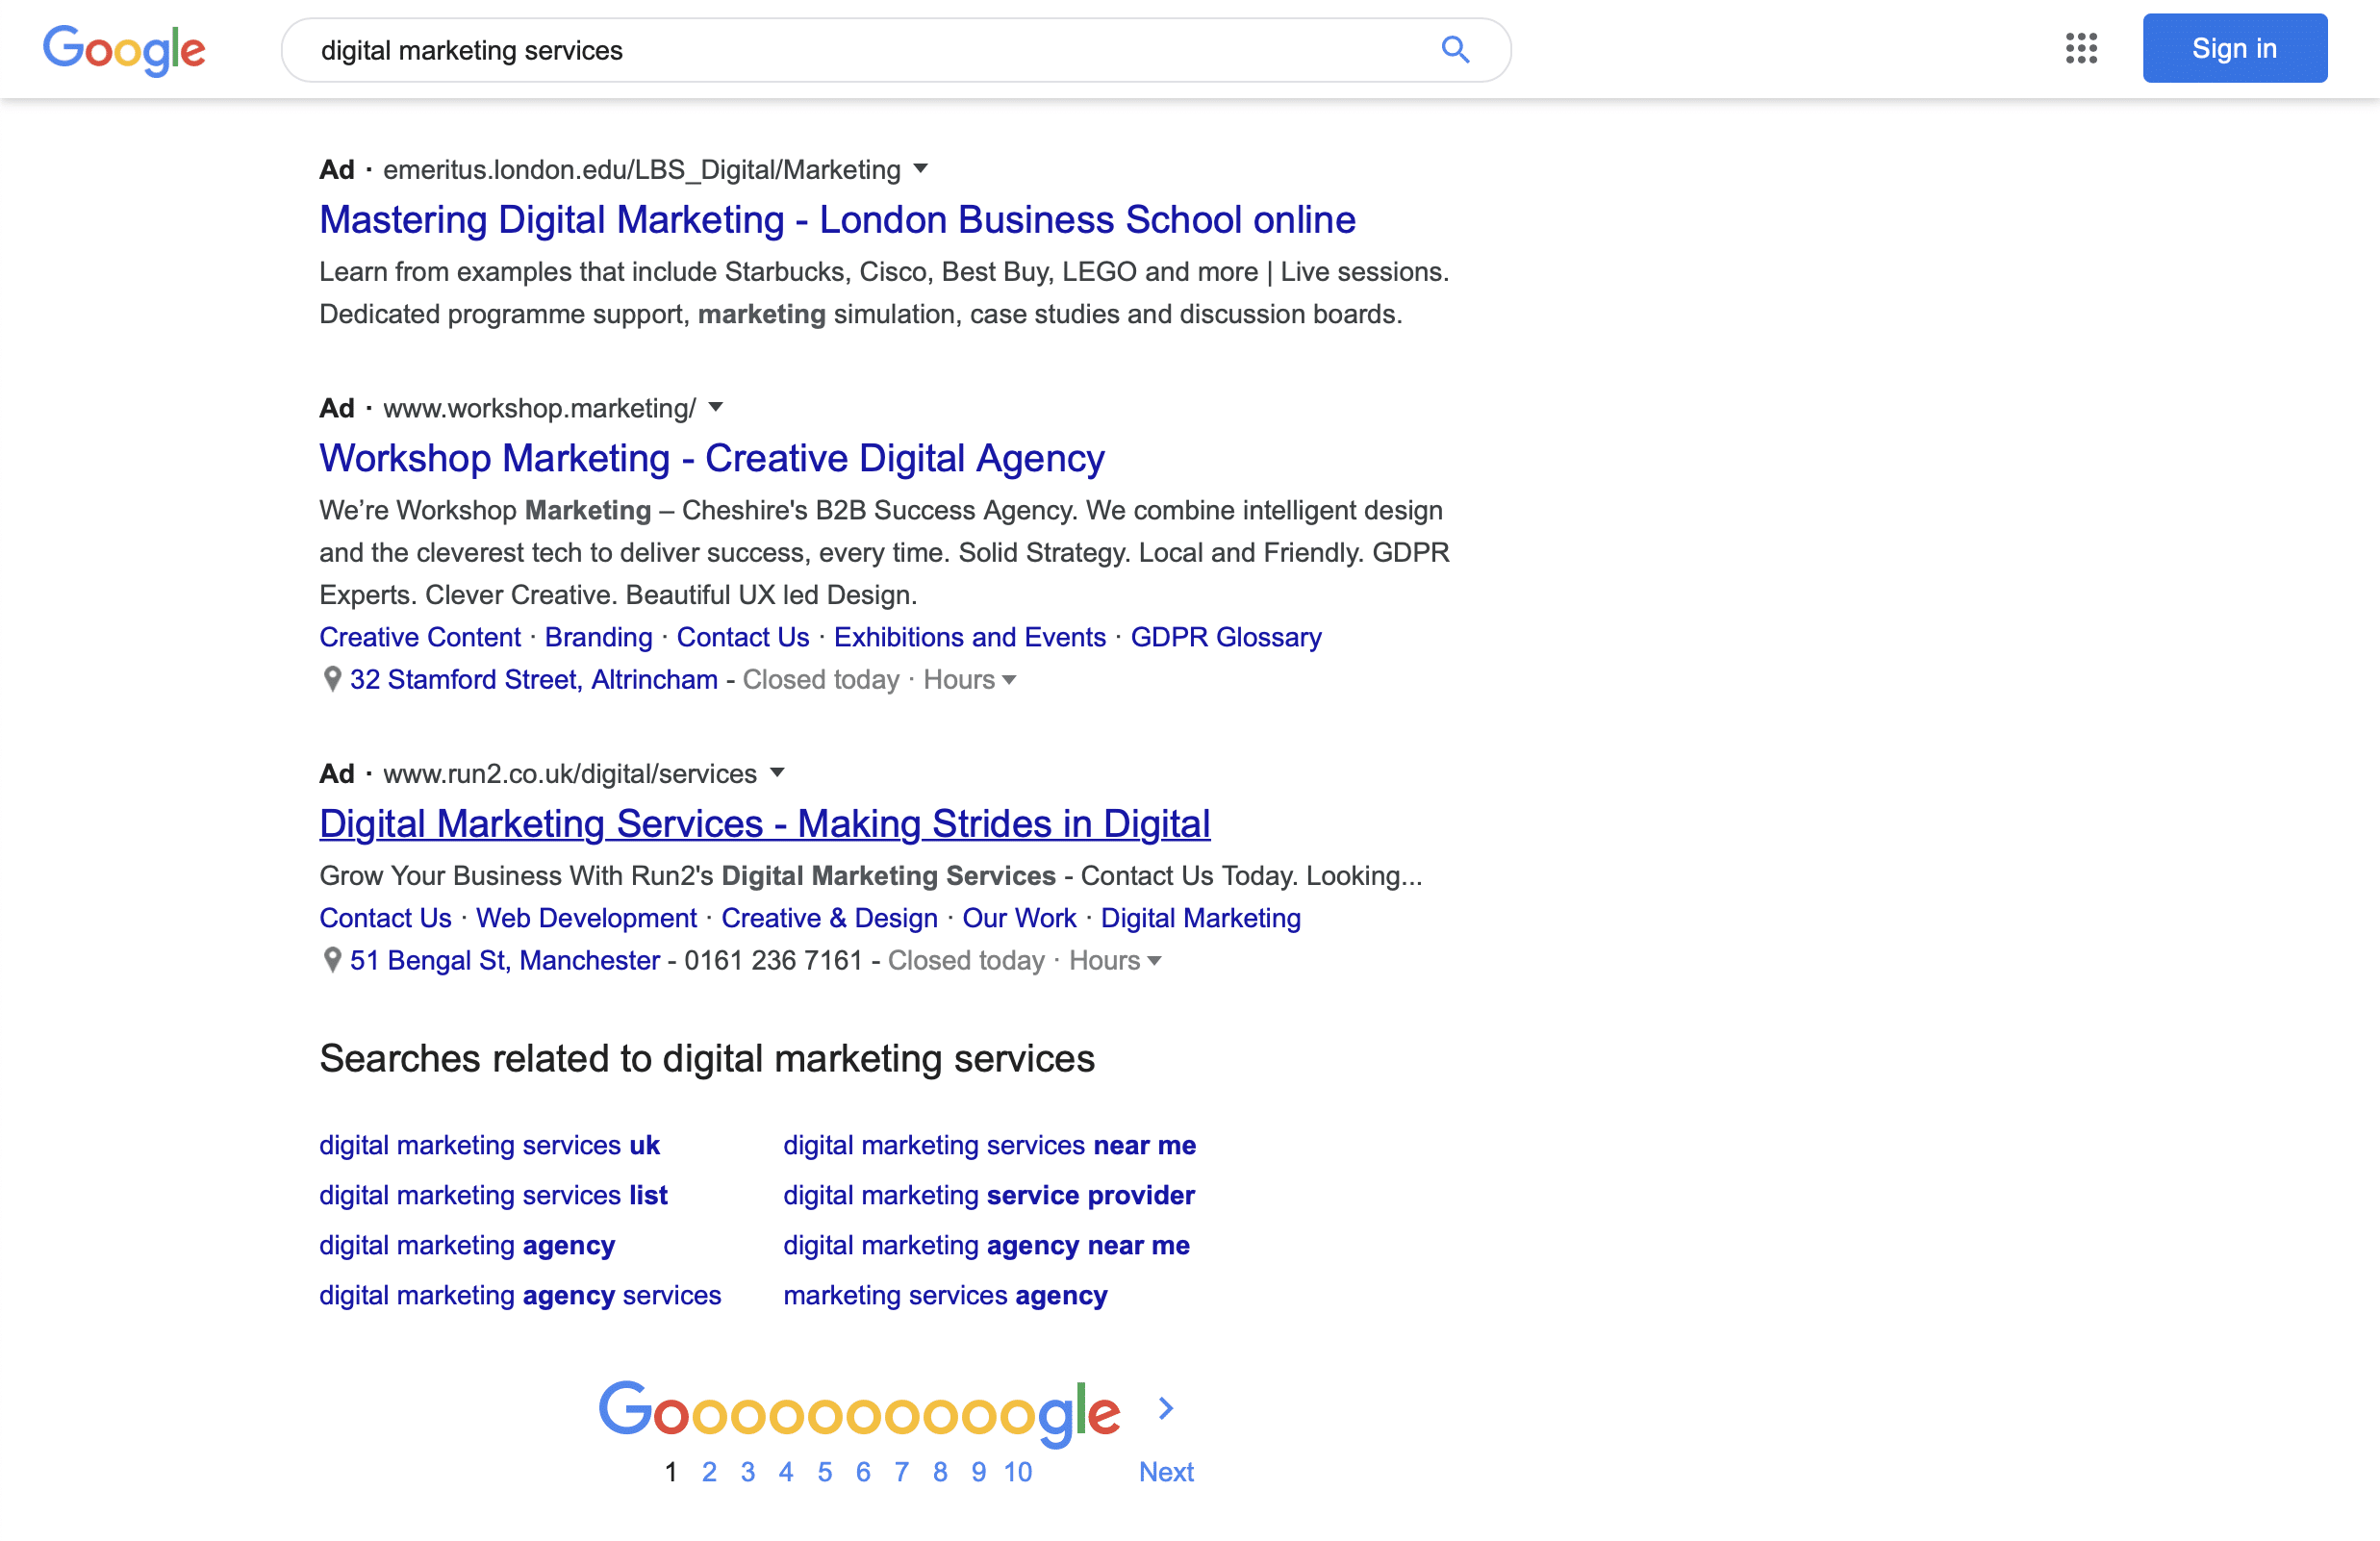 SERP for Digital Marketing Services